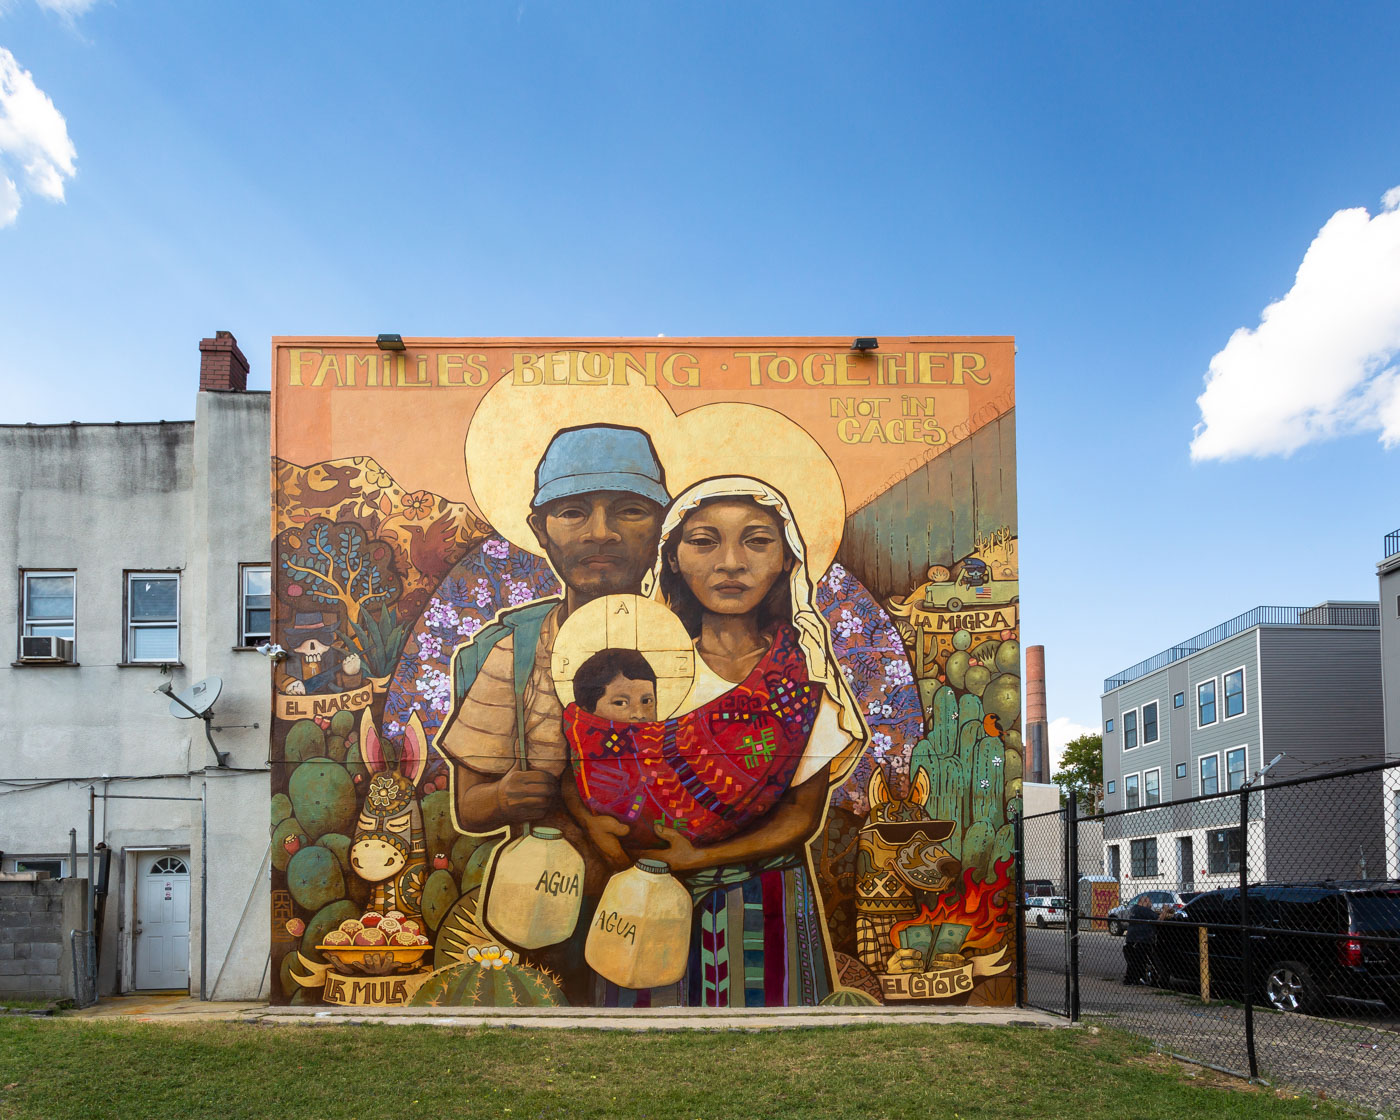 Mural in Philadelphia featuring an immigrant family